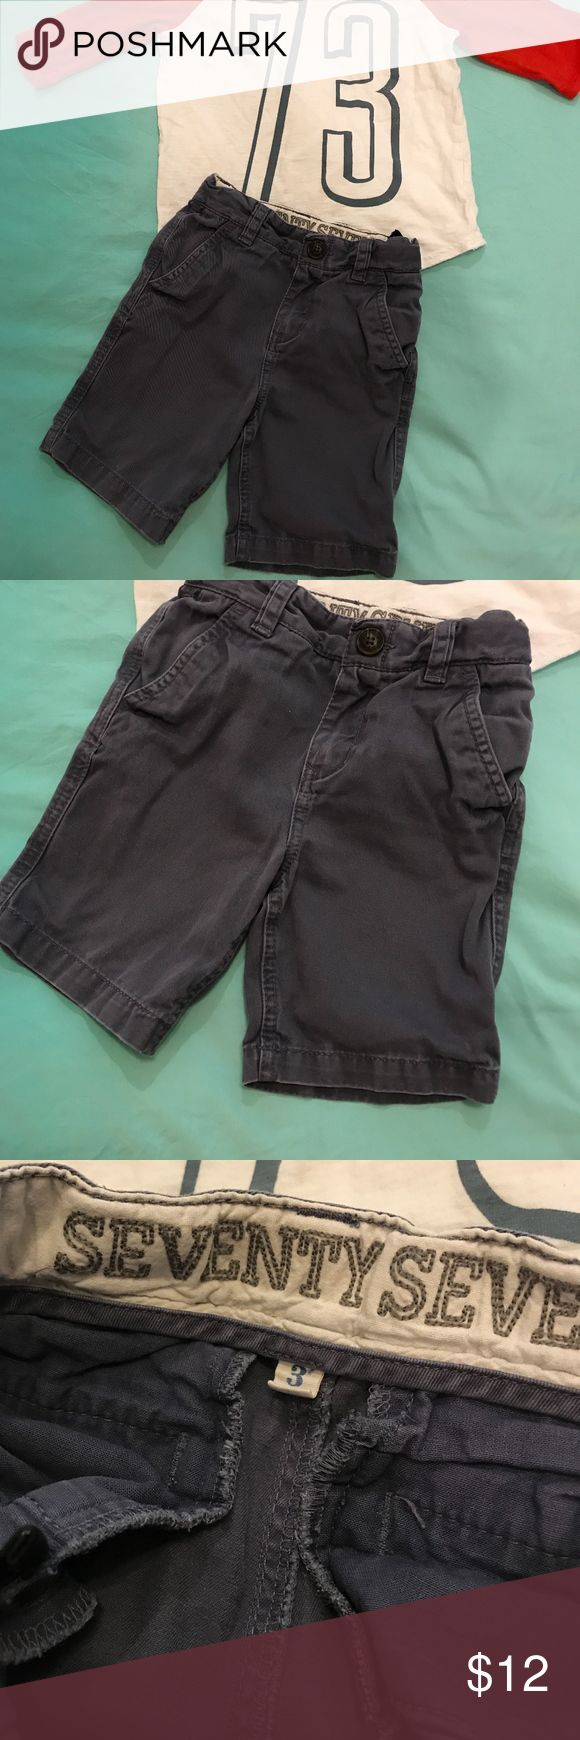 Boys Navy Chino Shorts Navy Chino Shorts -  Seventy Seven was the kids brand of American Eagle which is no longer in business  Size 3  Great Condition American Eagle Outfitters Bottoms Shorts